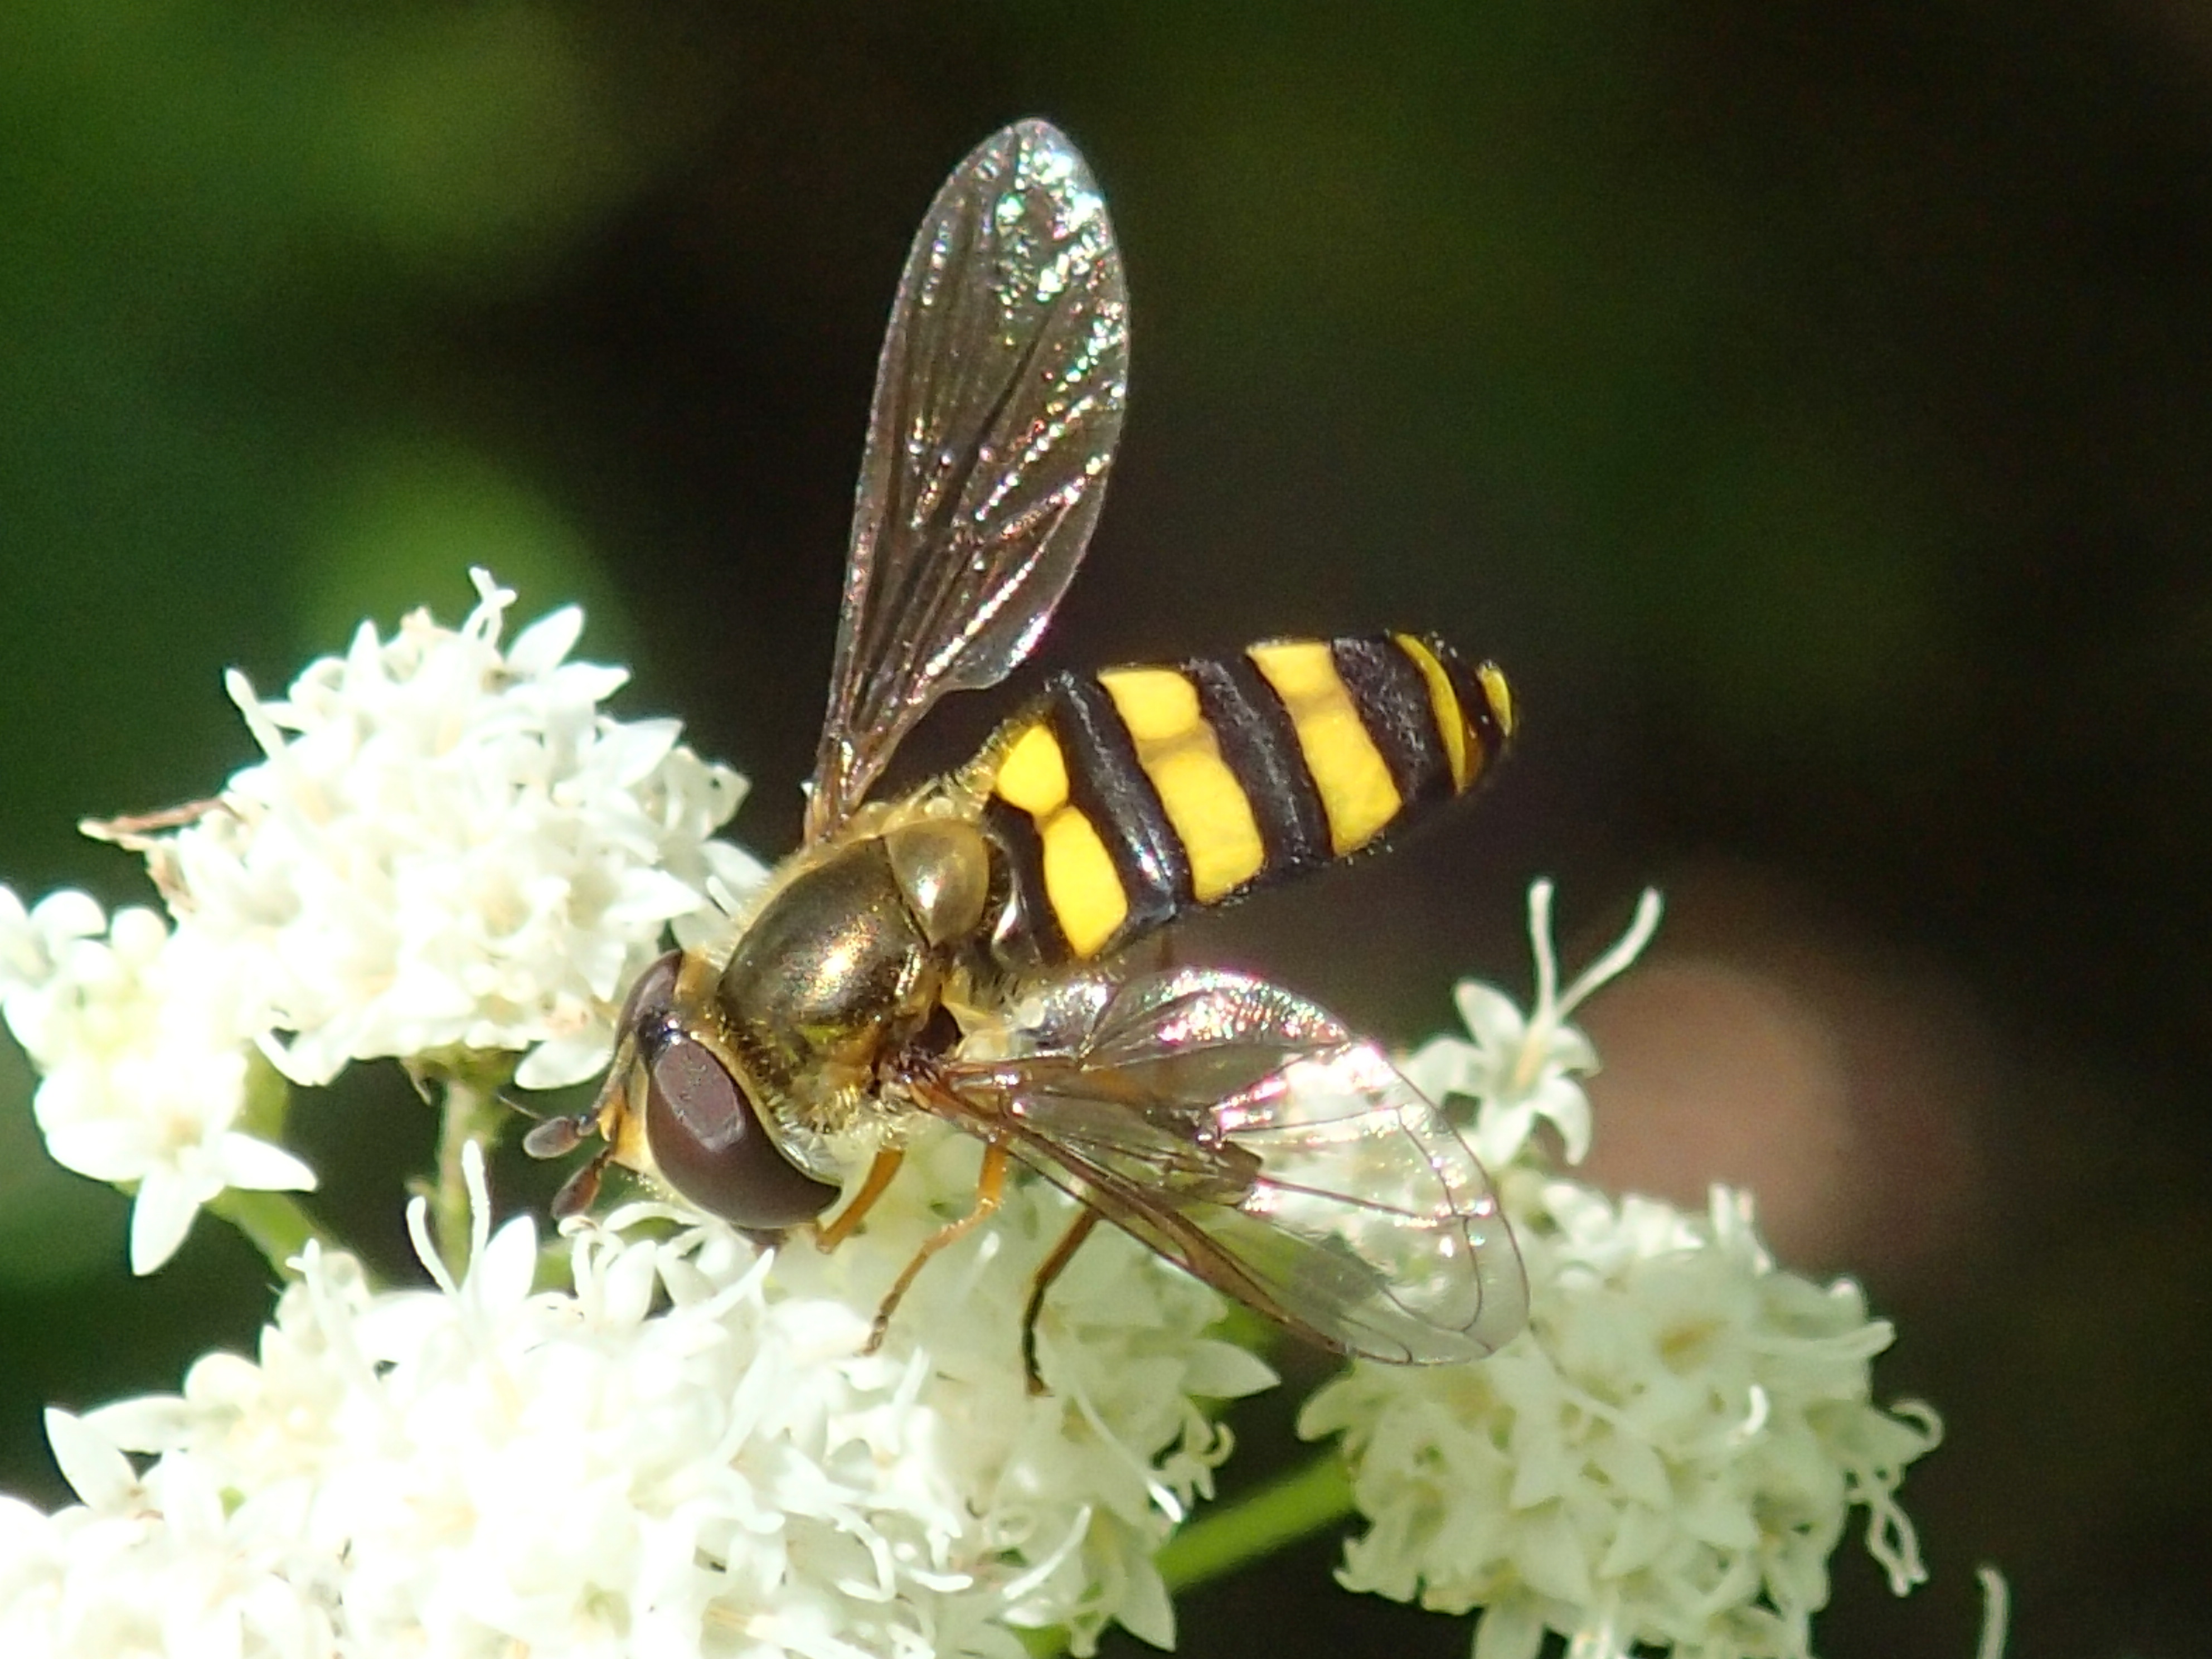 https://extension.illinois.edu/photolib/lib1371/syrphid%5Ffly%5Fsnakeroot3.jpg